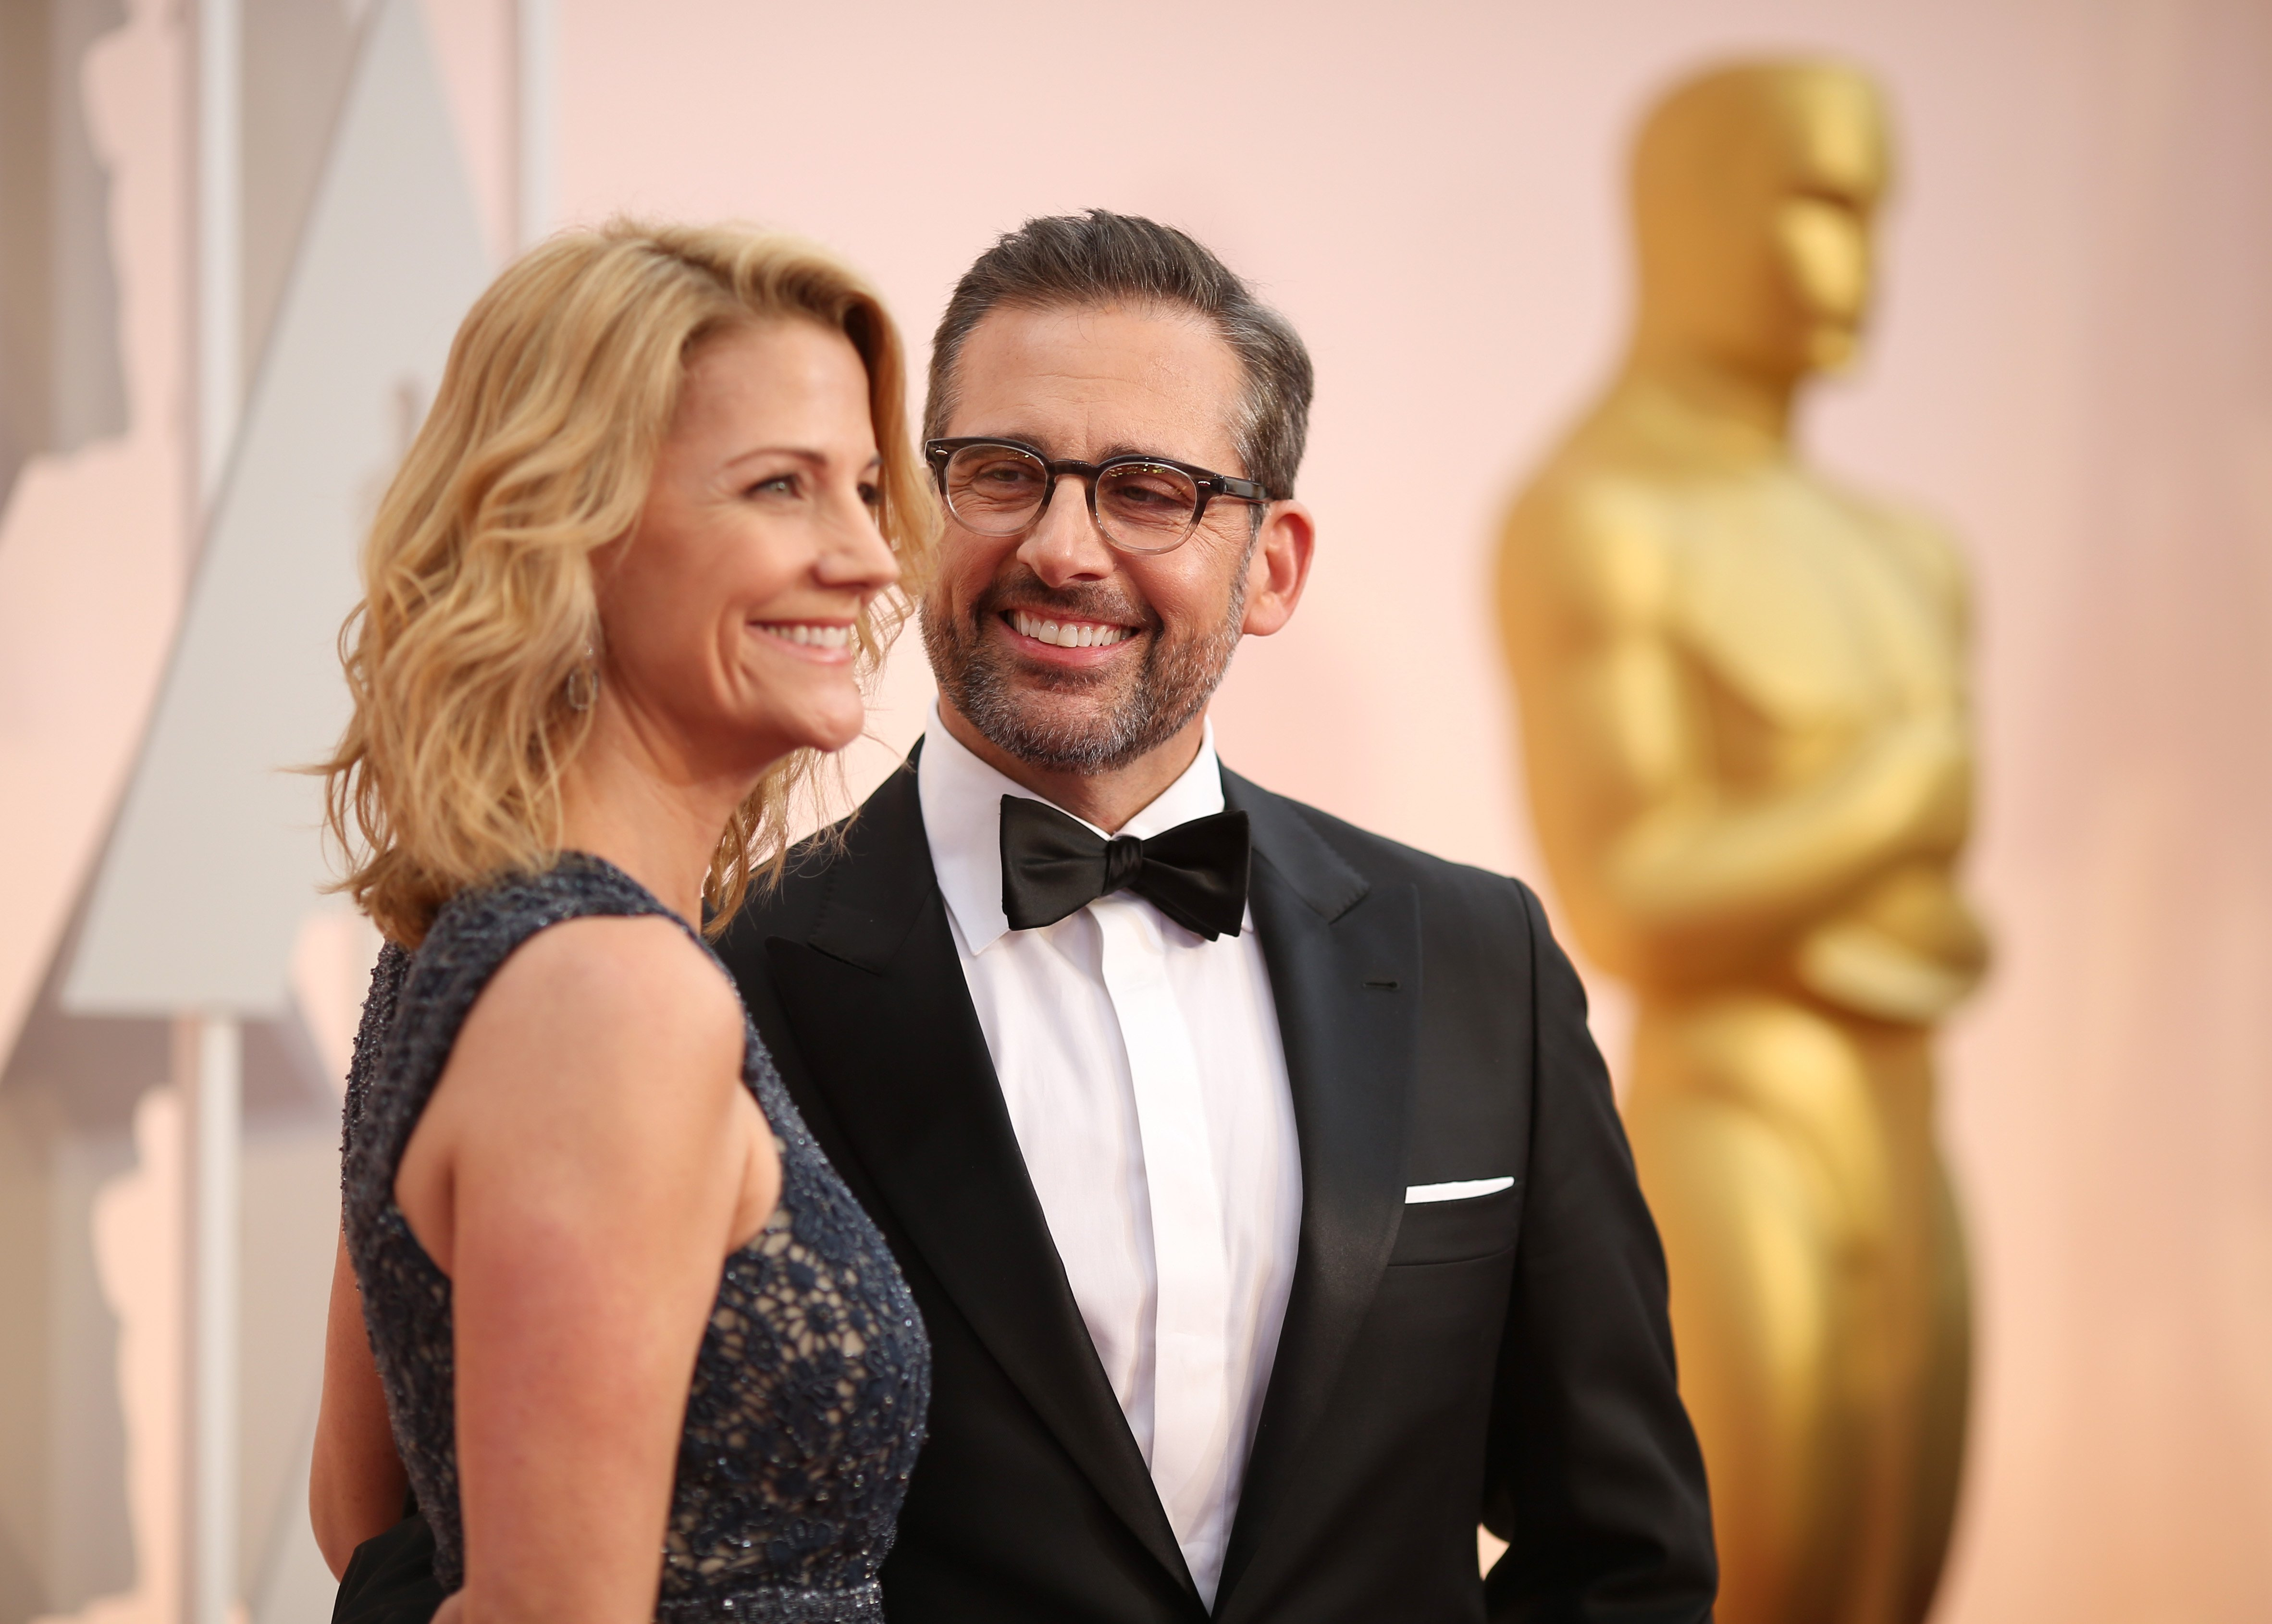 Steve Carell and Nancy Carell attend the 87th Annual Academy Awards at Hollywood & Highland Center on February 22, 2015 in Hollywood, California. | Photo: GettyImages